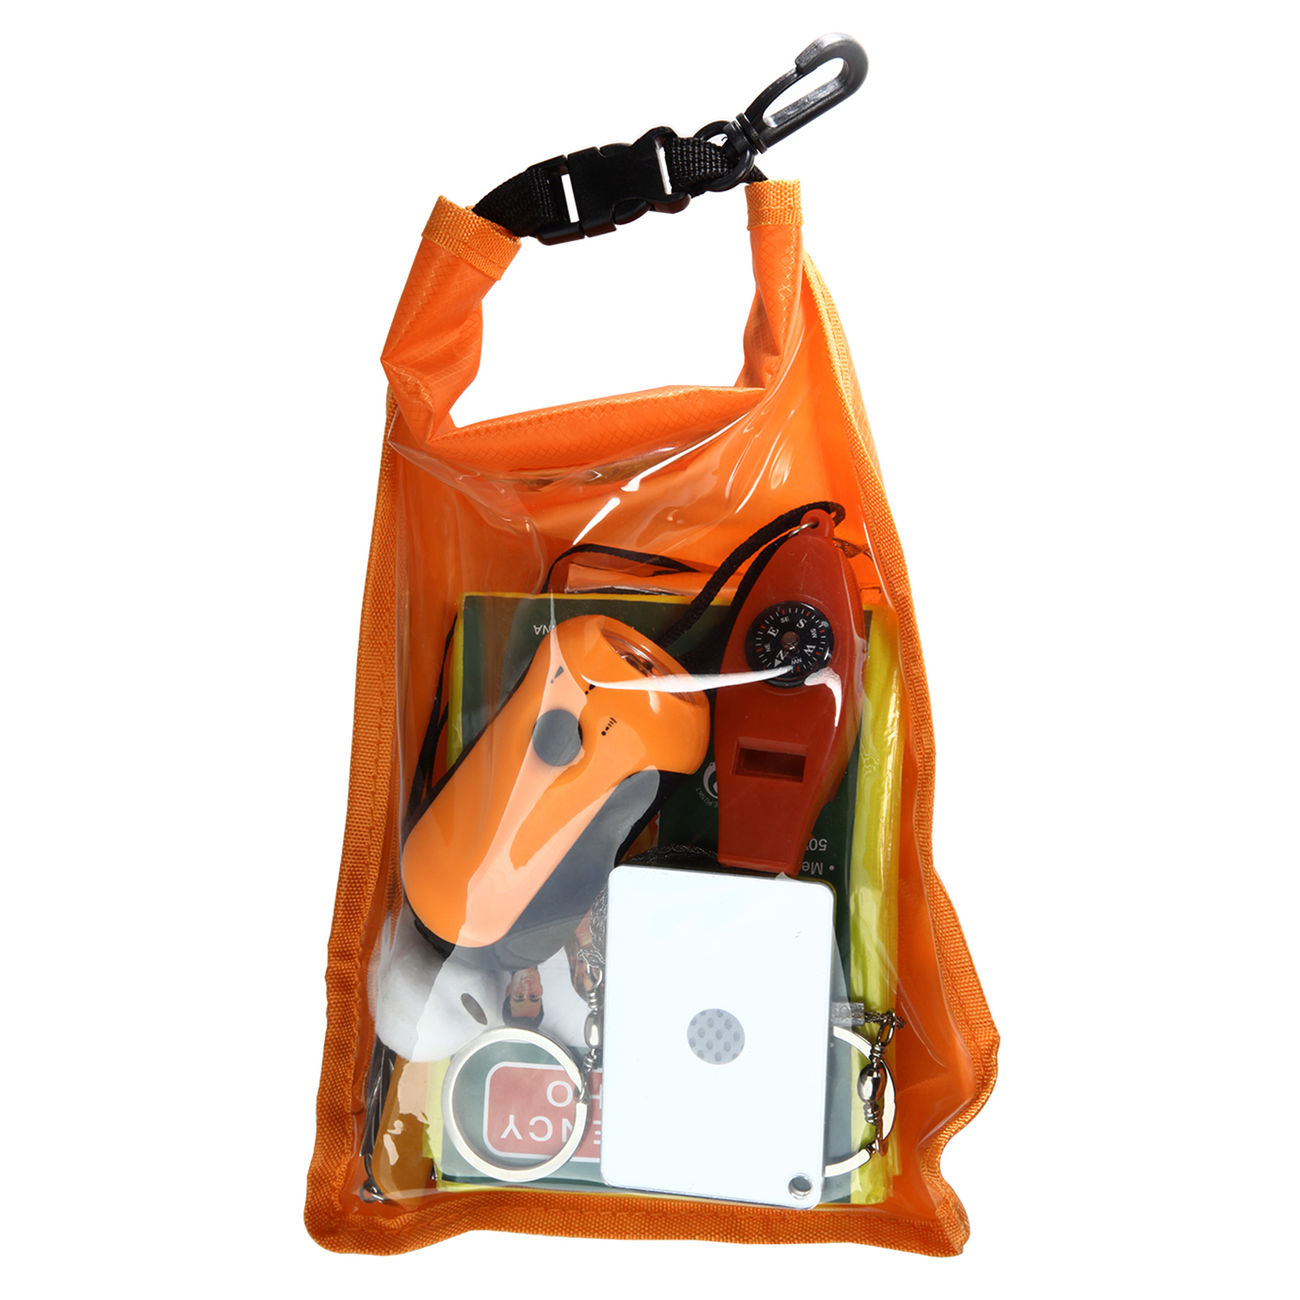 Mil-Tec Outdoor-Survival-Pack large orange 4